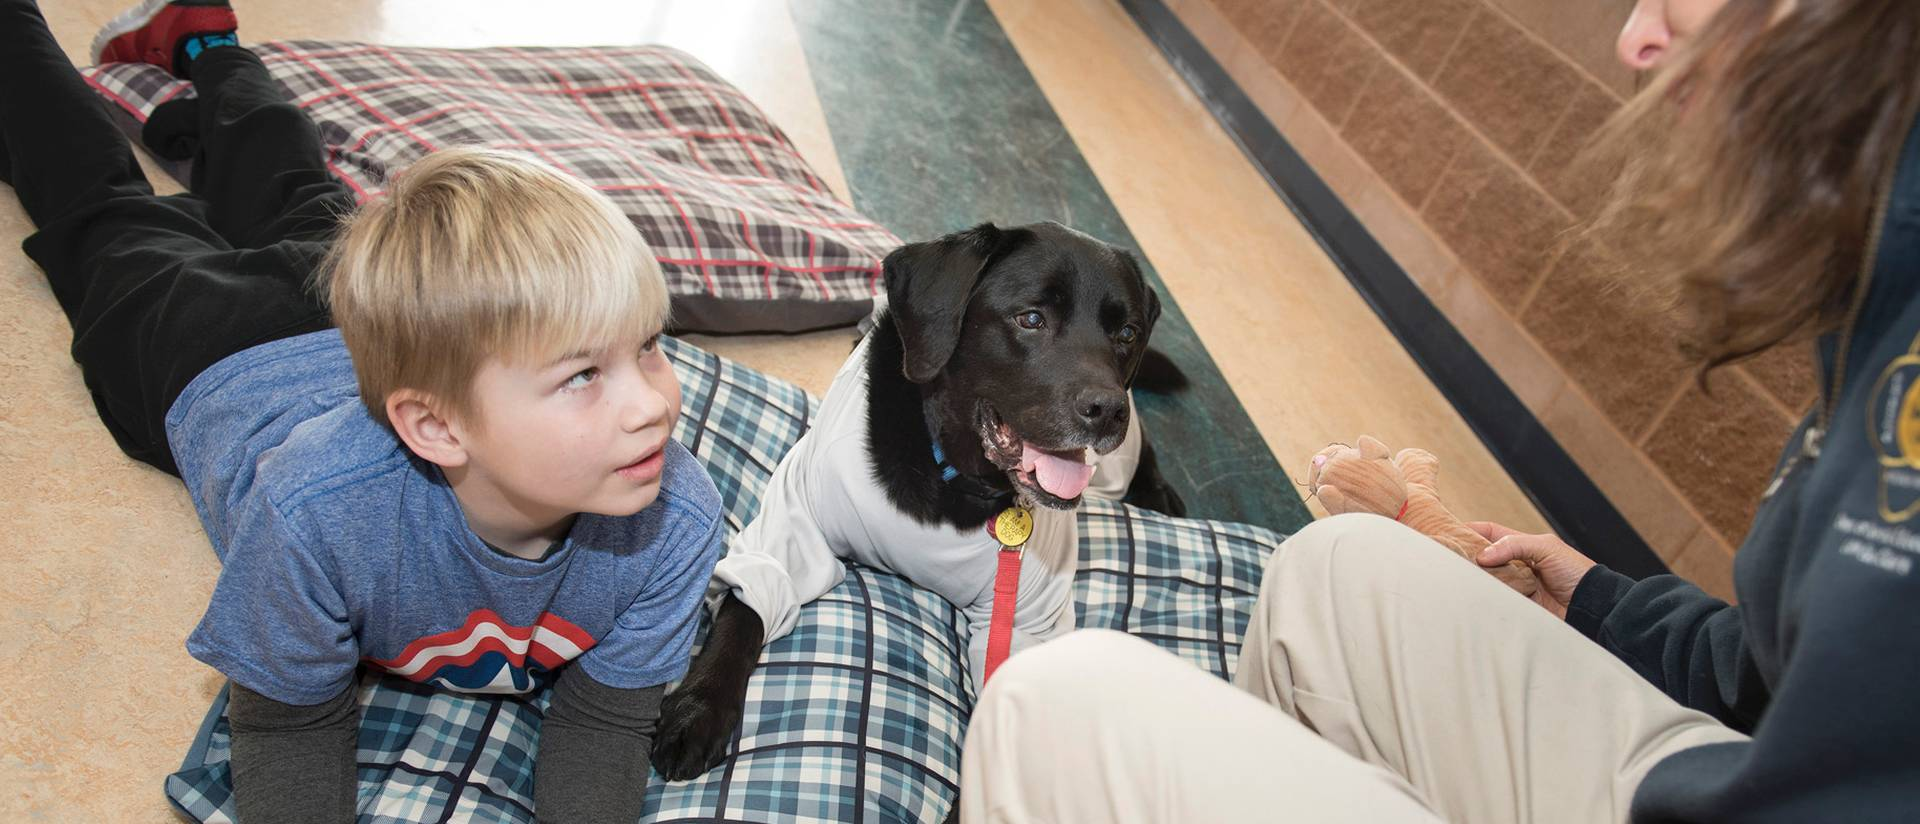 Nicholas Hein, therapy dog Solomon and Dr. Anne Papalia